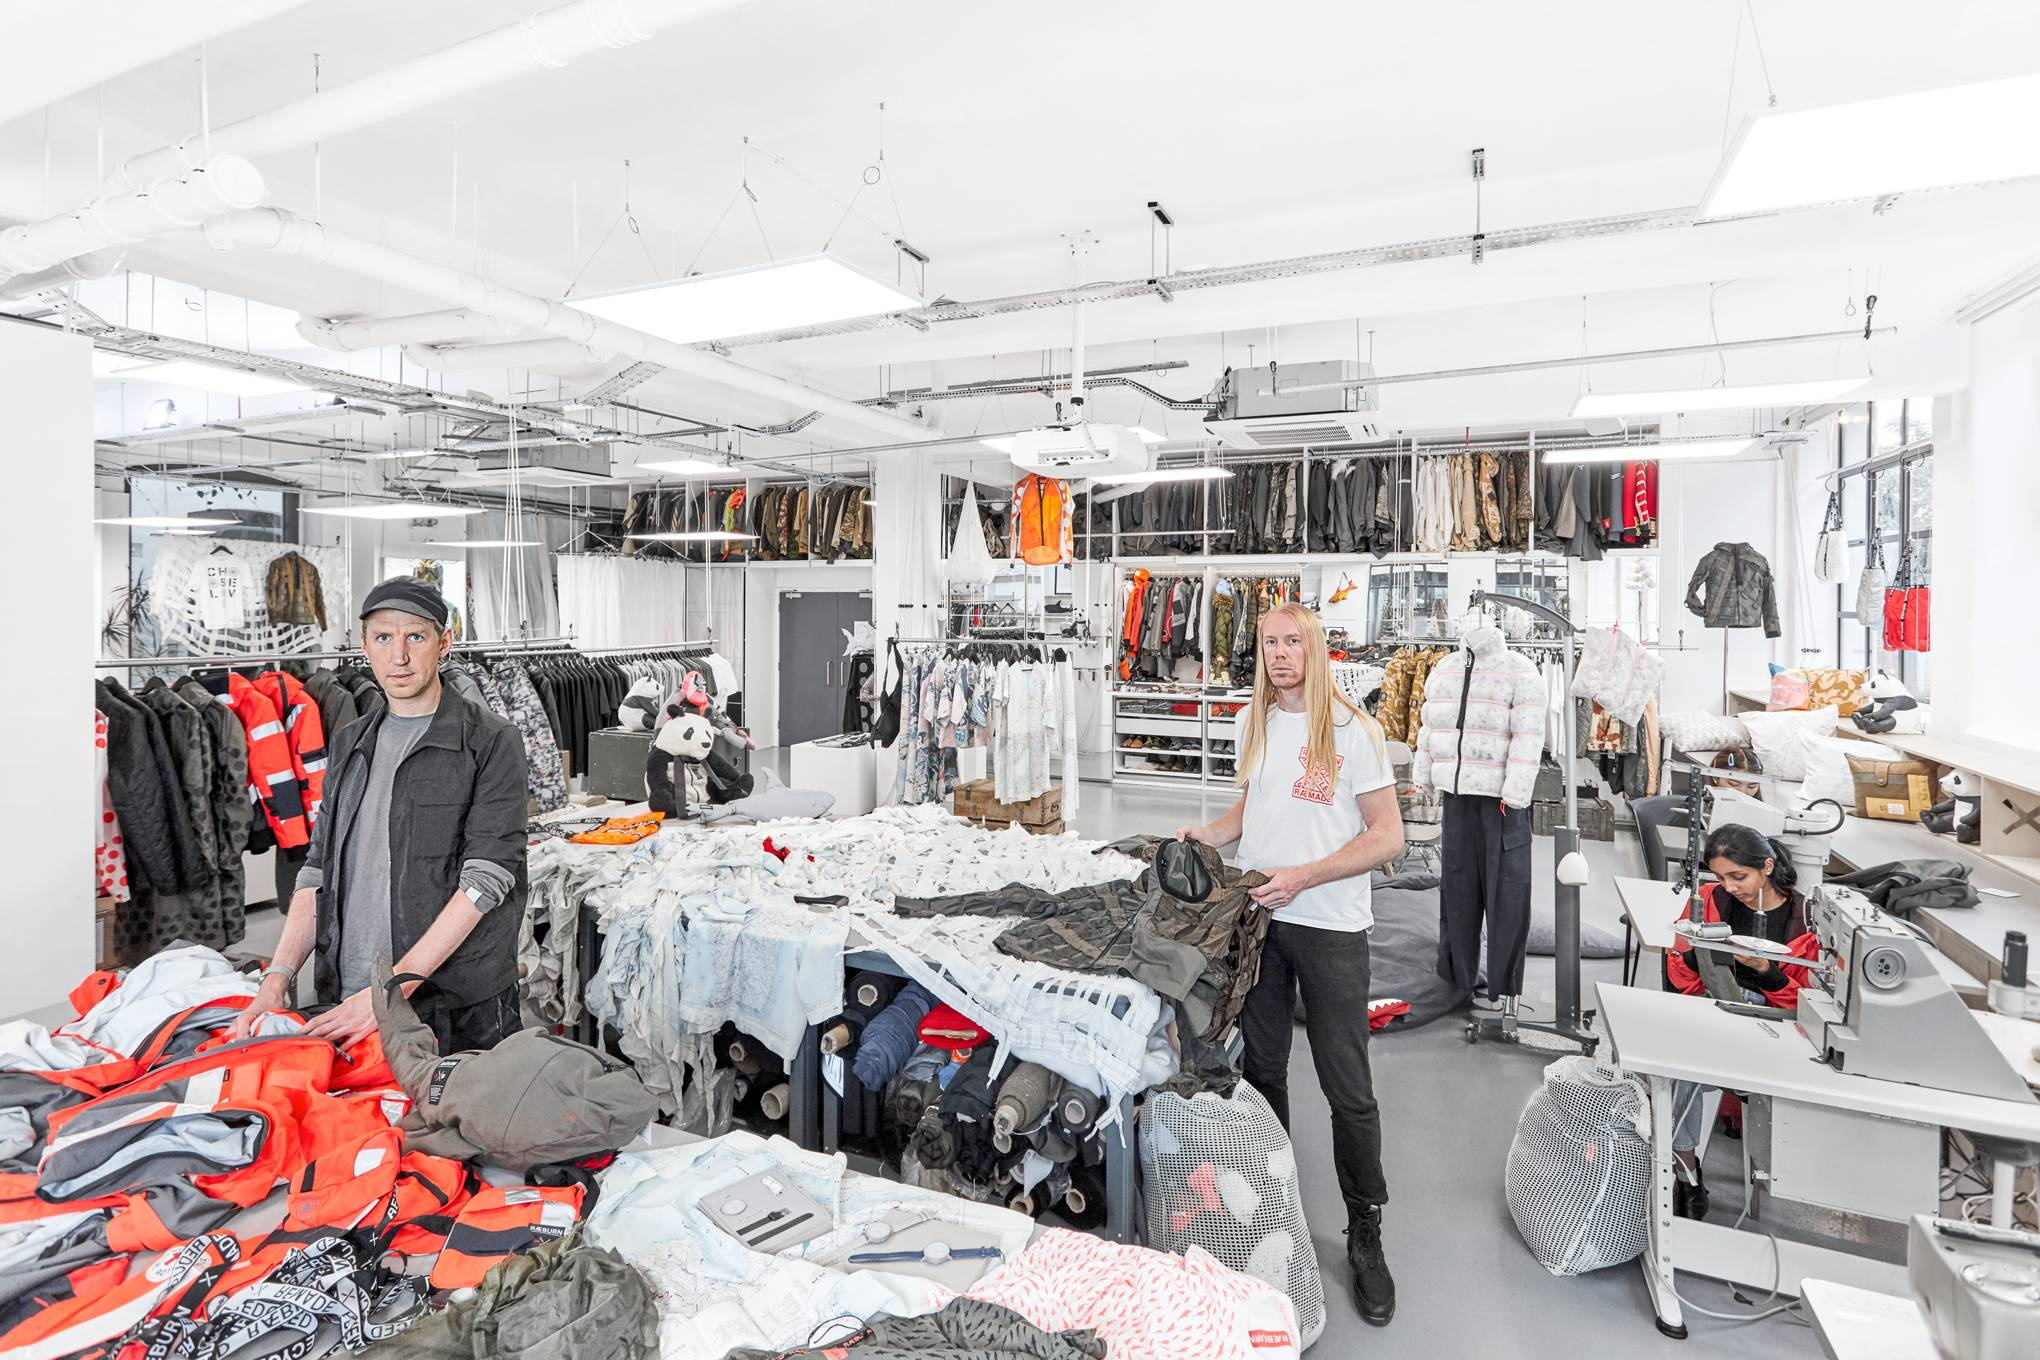 Landfill is being turned into luxury to fight back against fast fashion